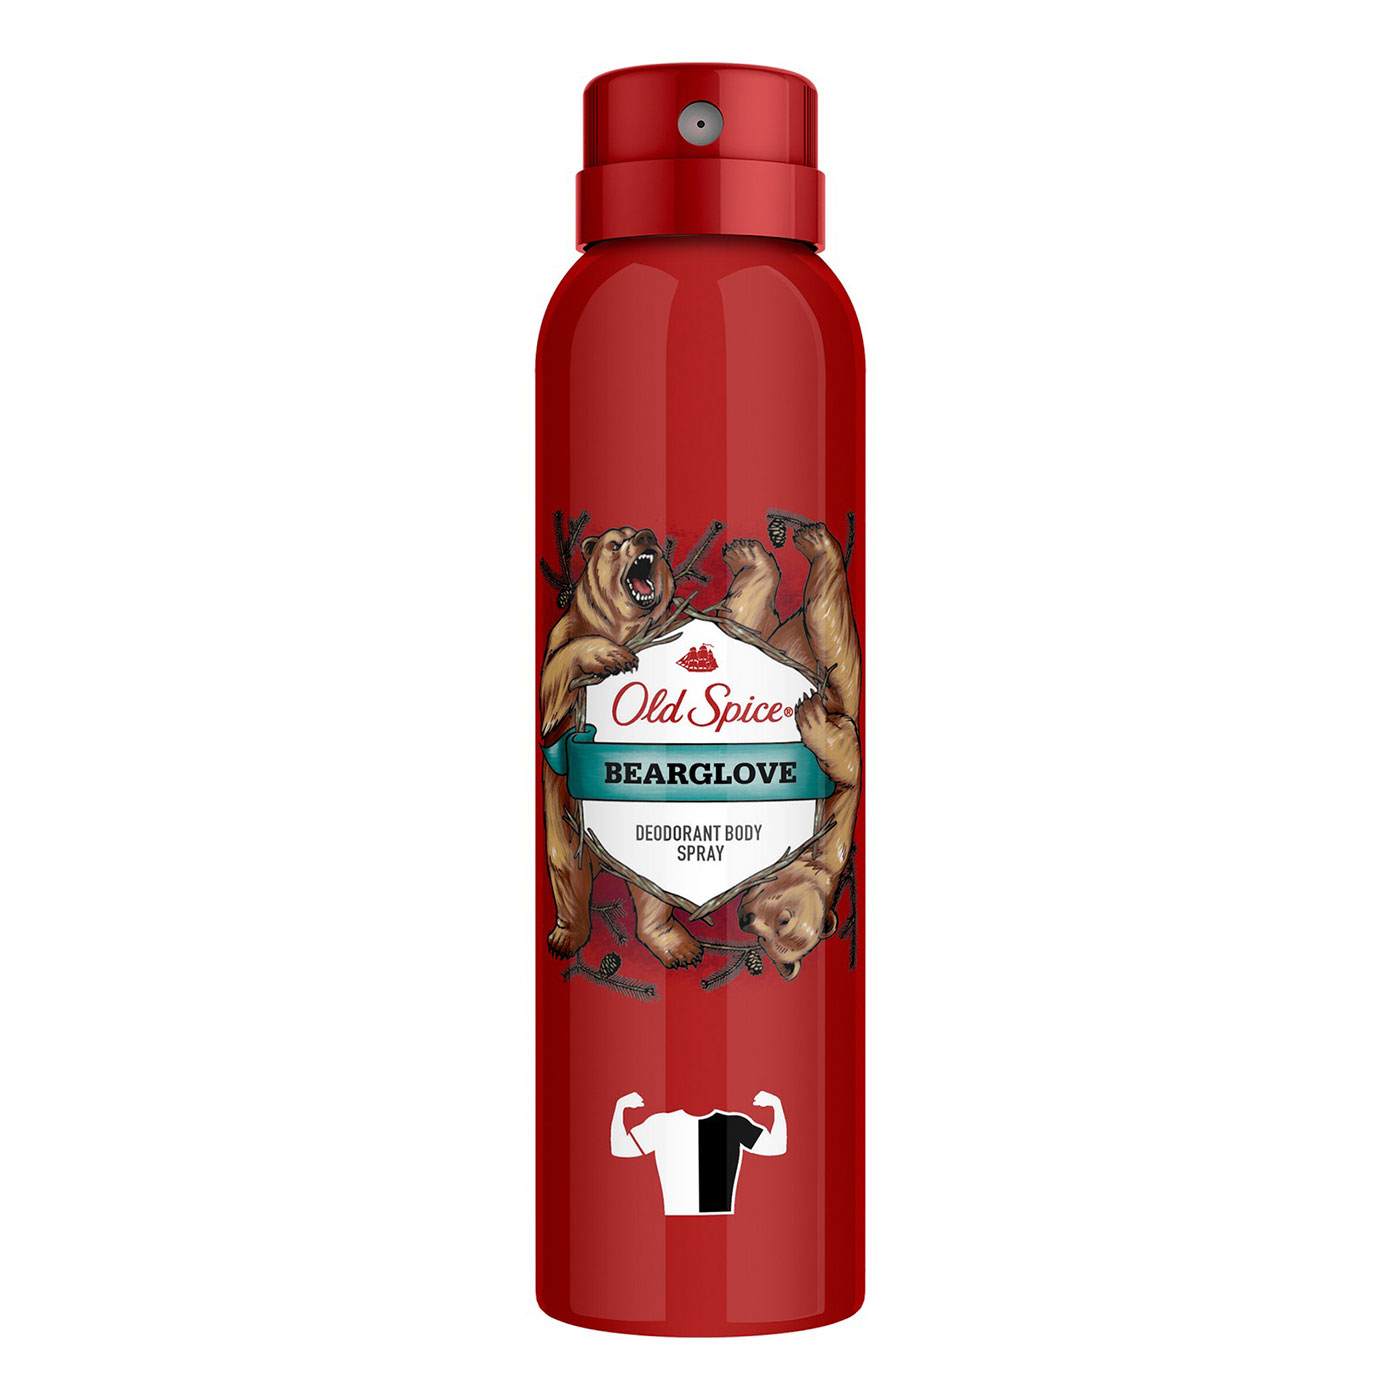 Wholesale old spice spray deodorant 150 ml bearglove